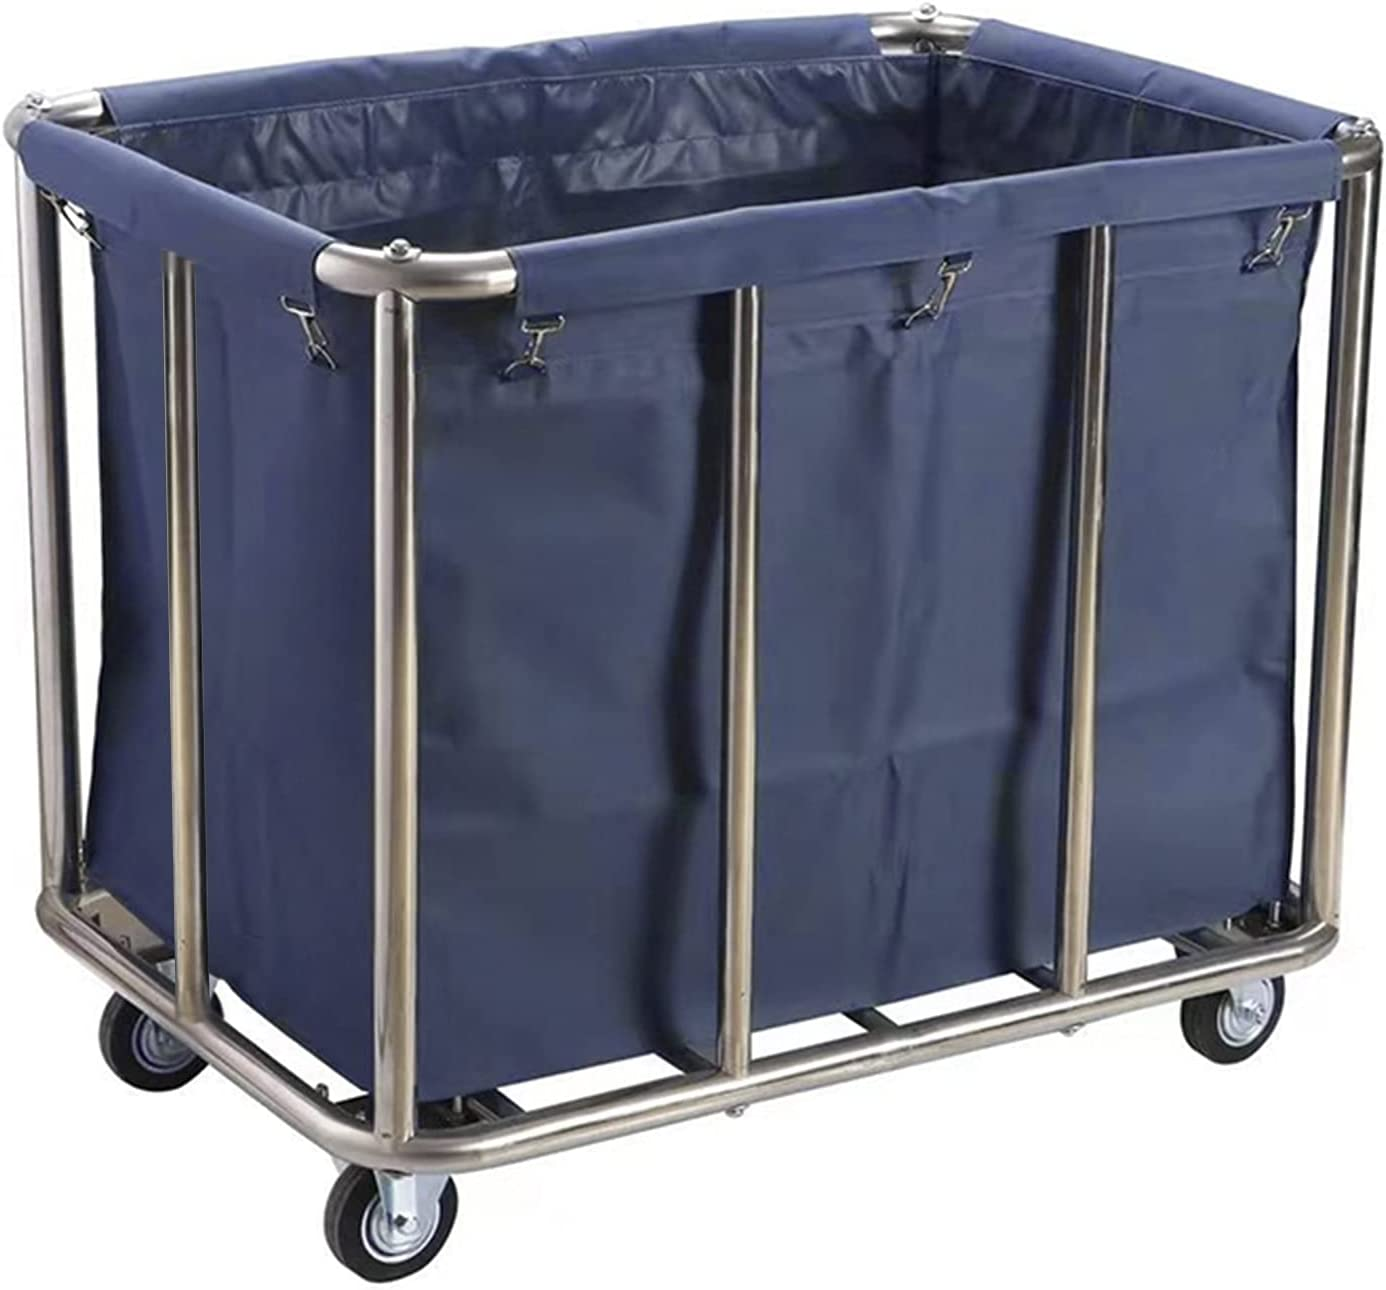 Laundry Basket Collector Trolley Max 40% discount OFF Duty Heavy L Commercial